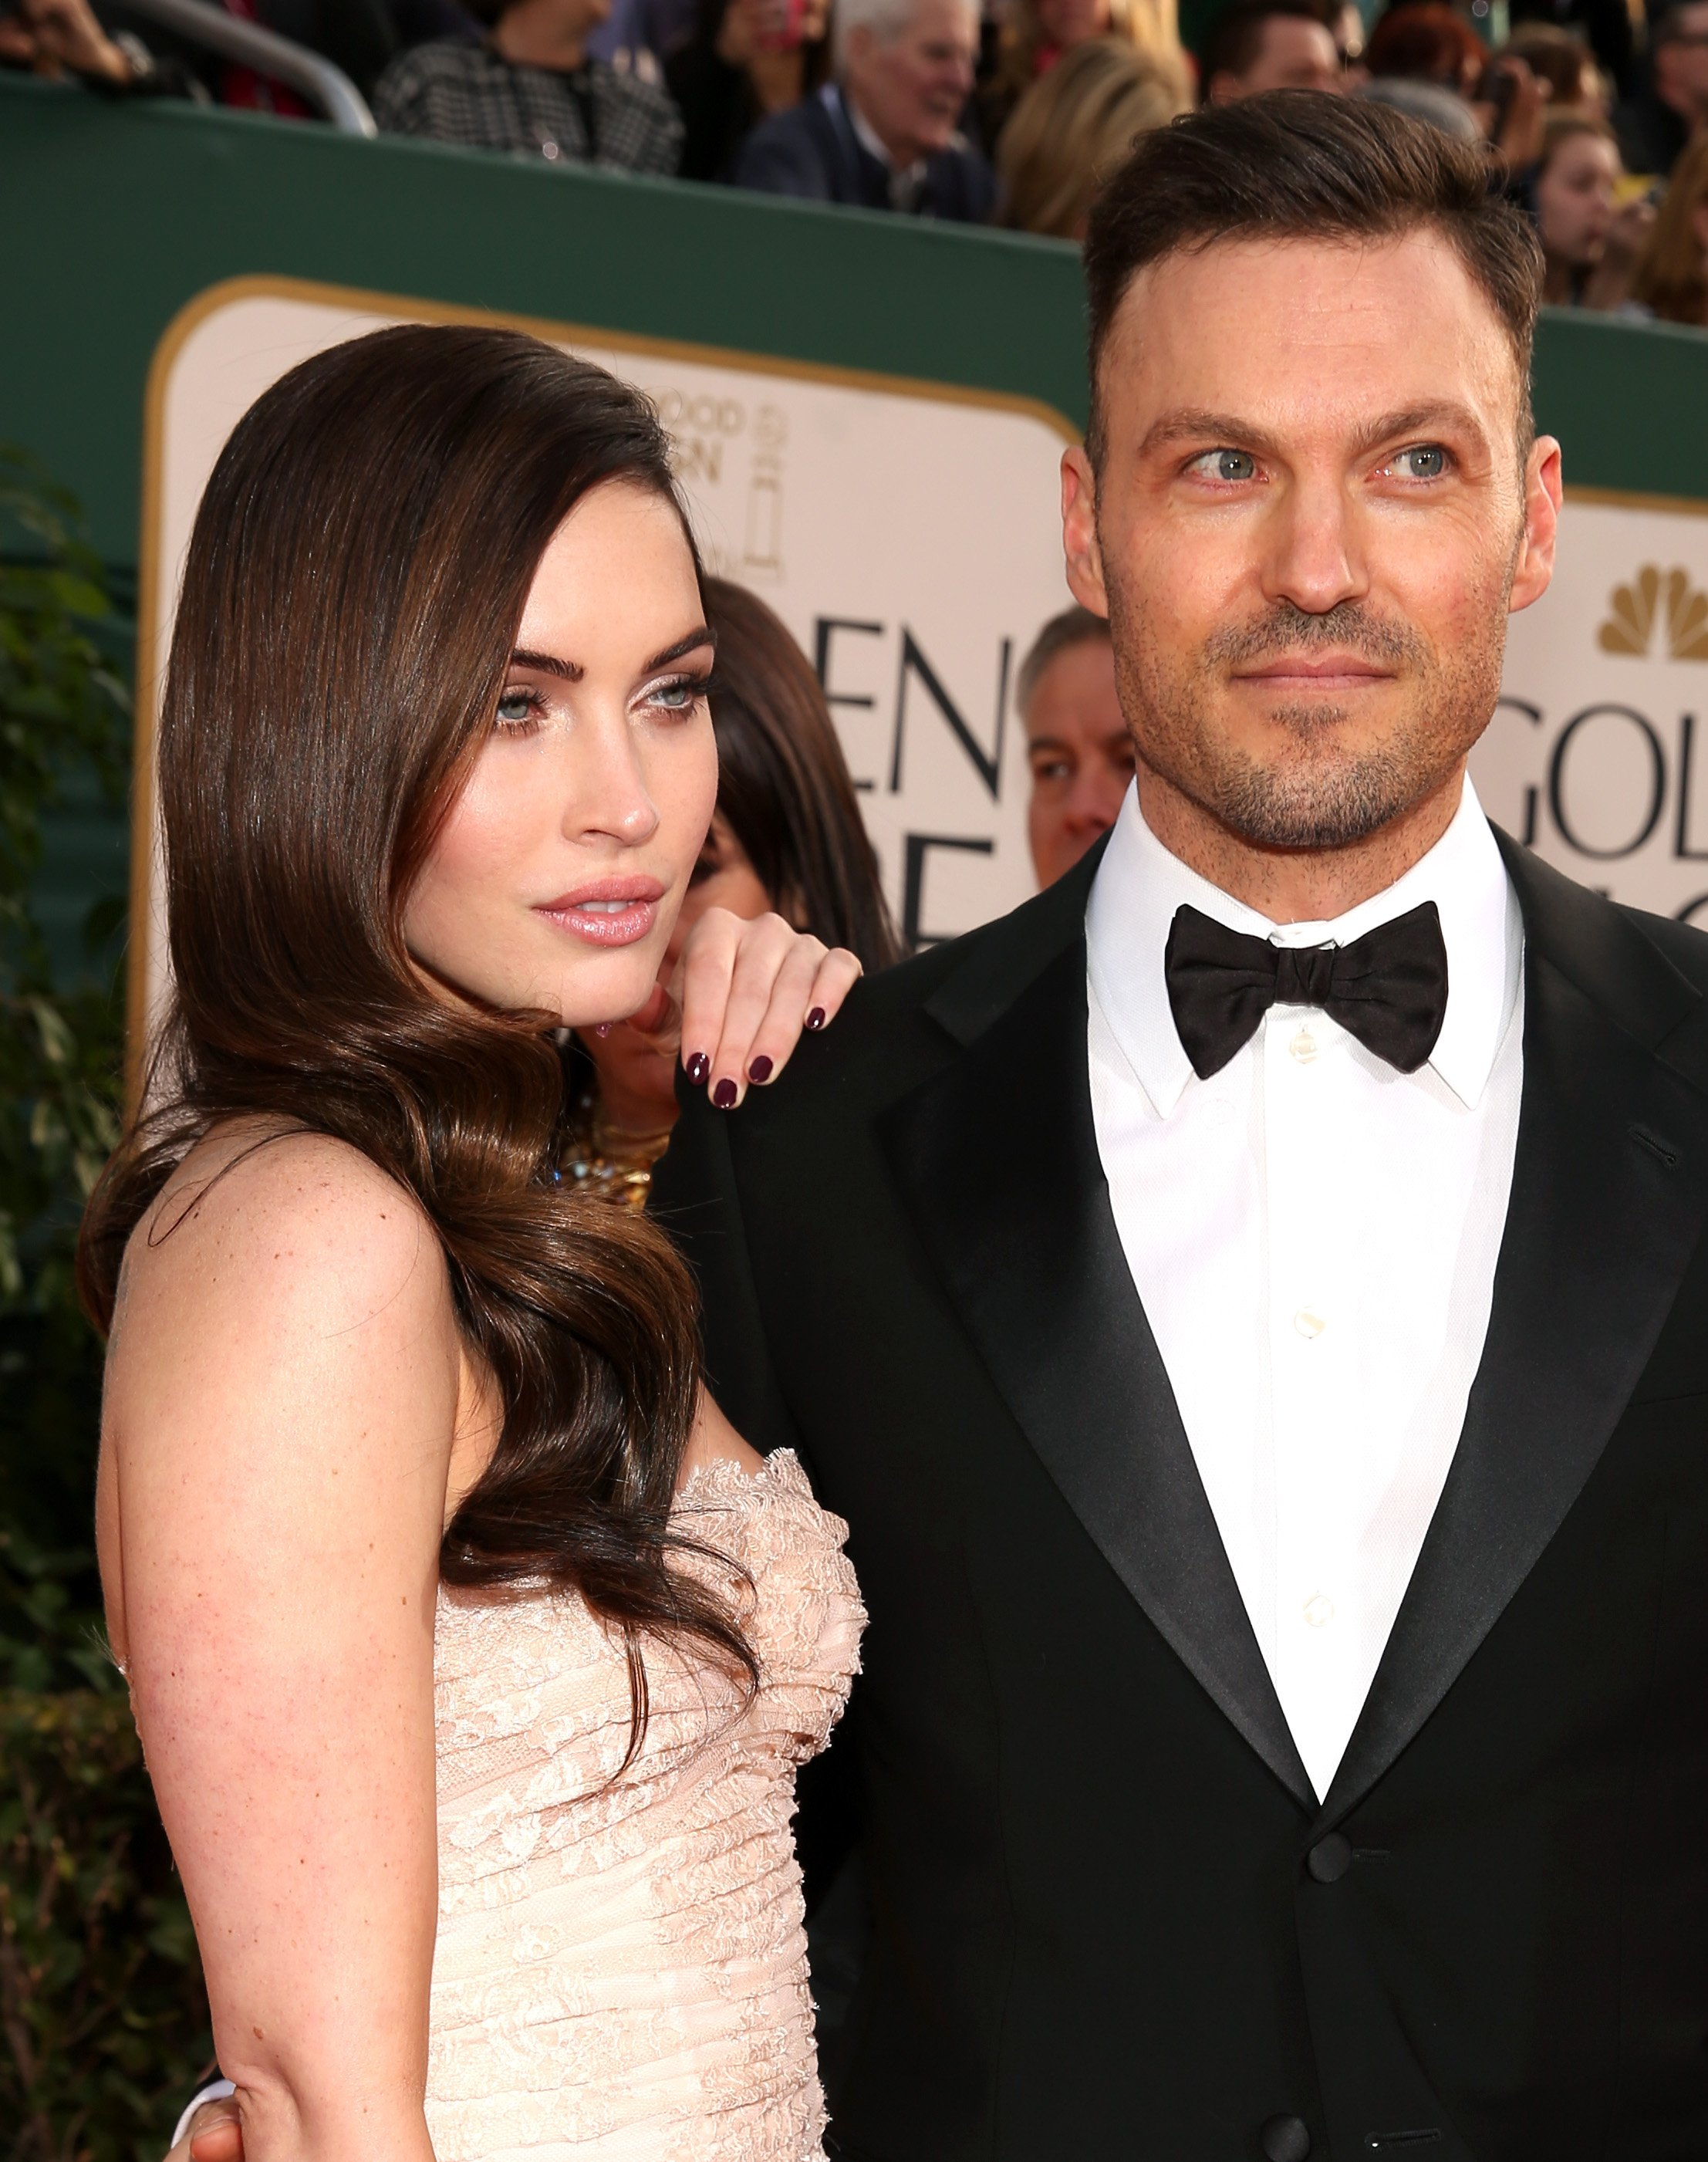 Megan Fox and Brian Austin Green arrive to the 70th Annual Golden Globe Awards / Photo:Getty Images